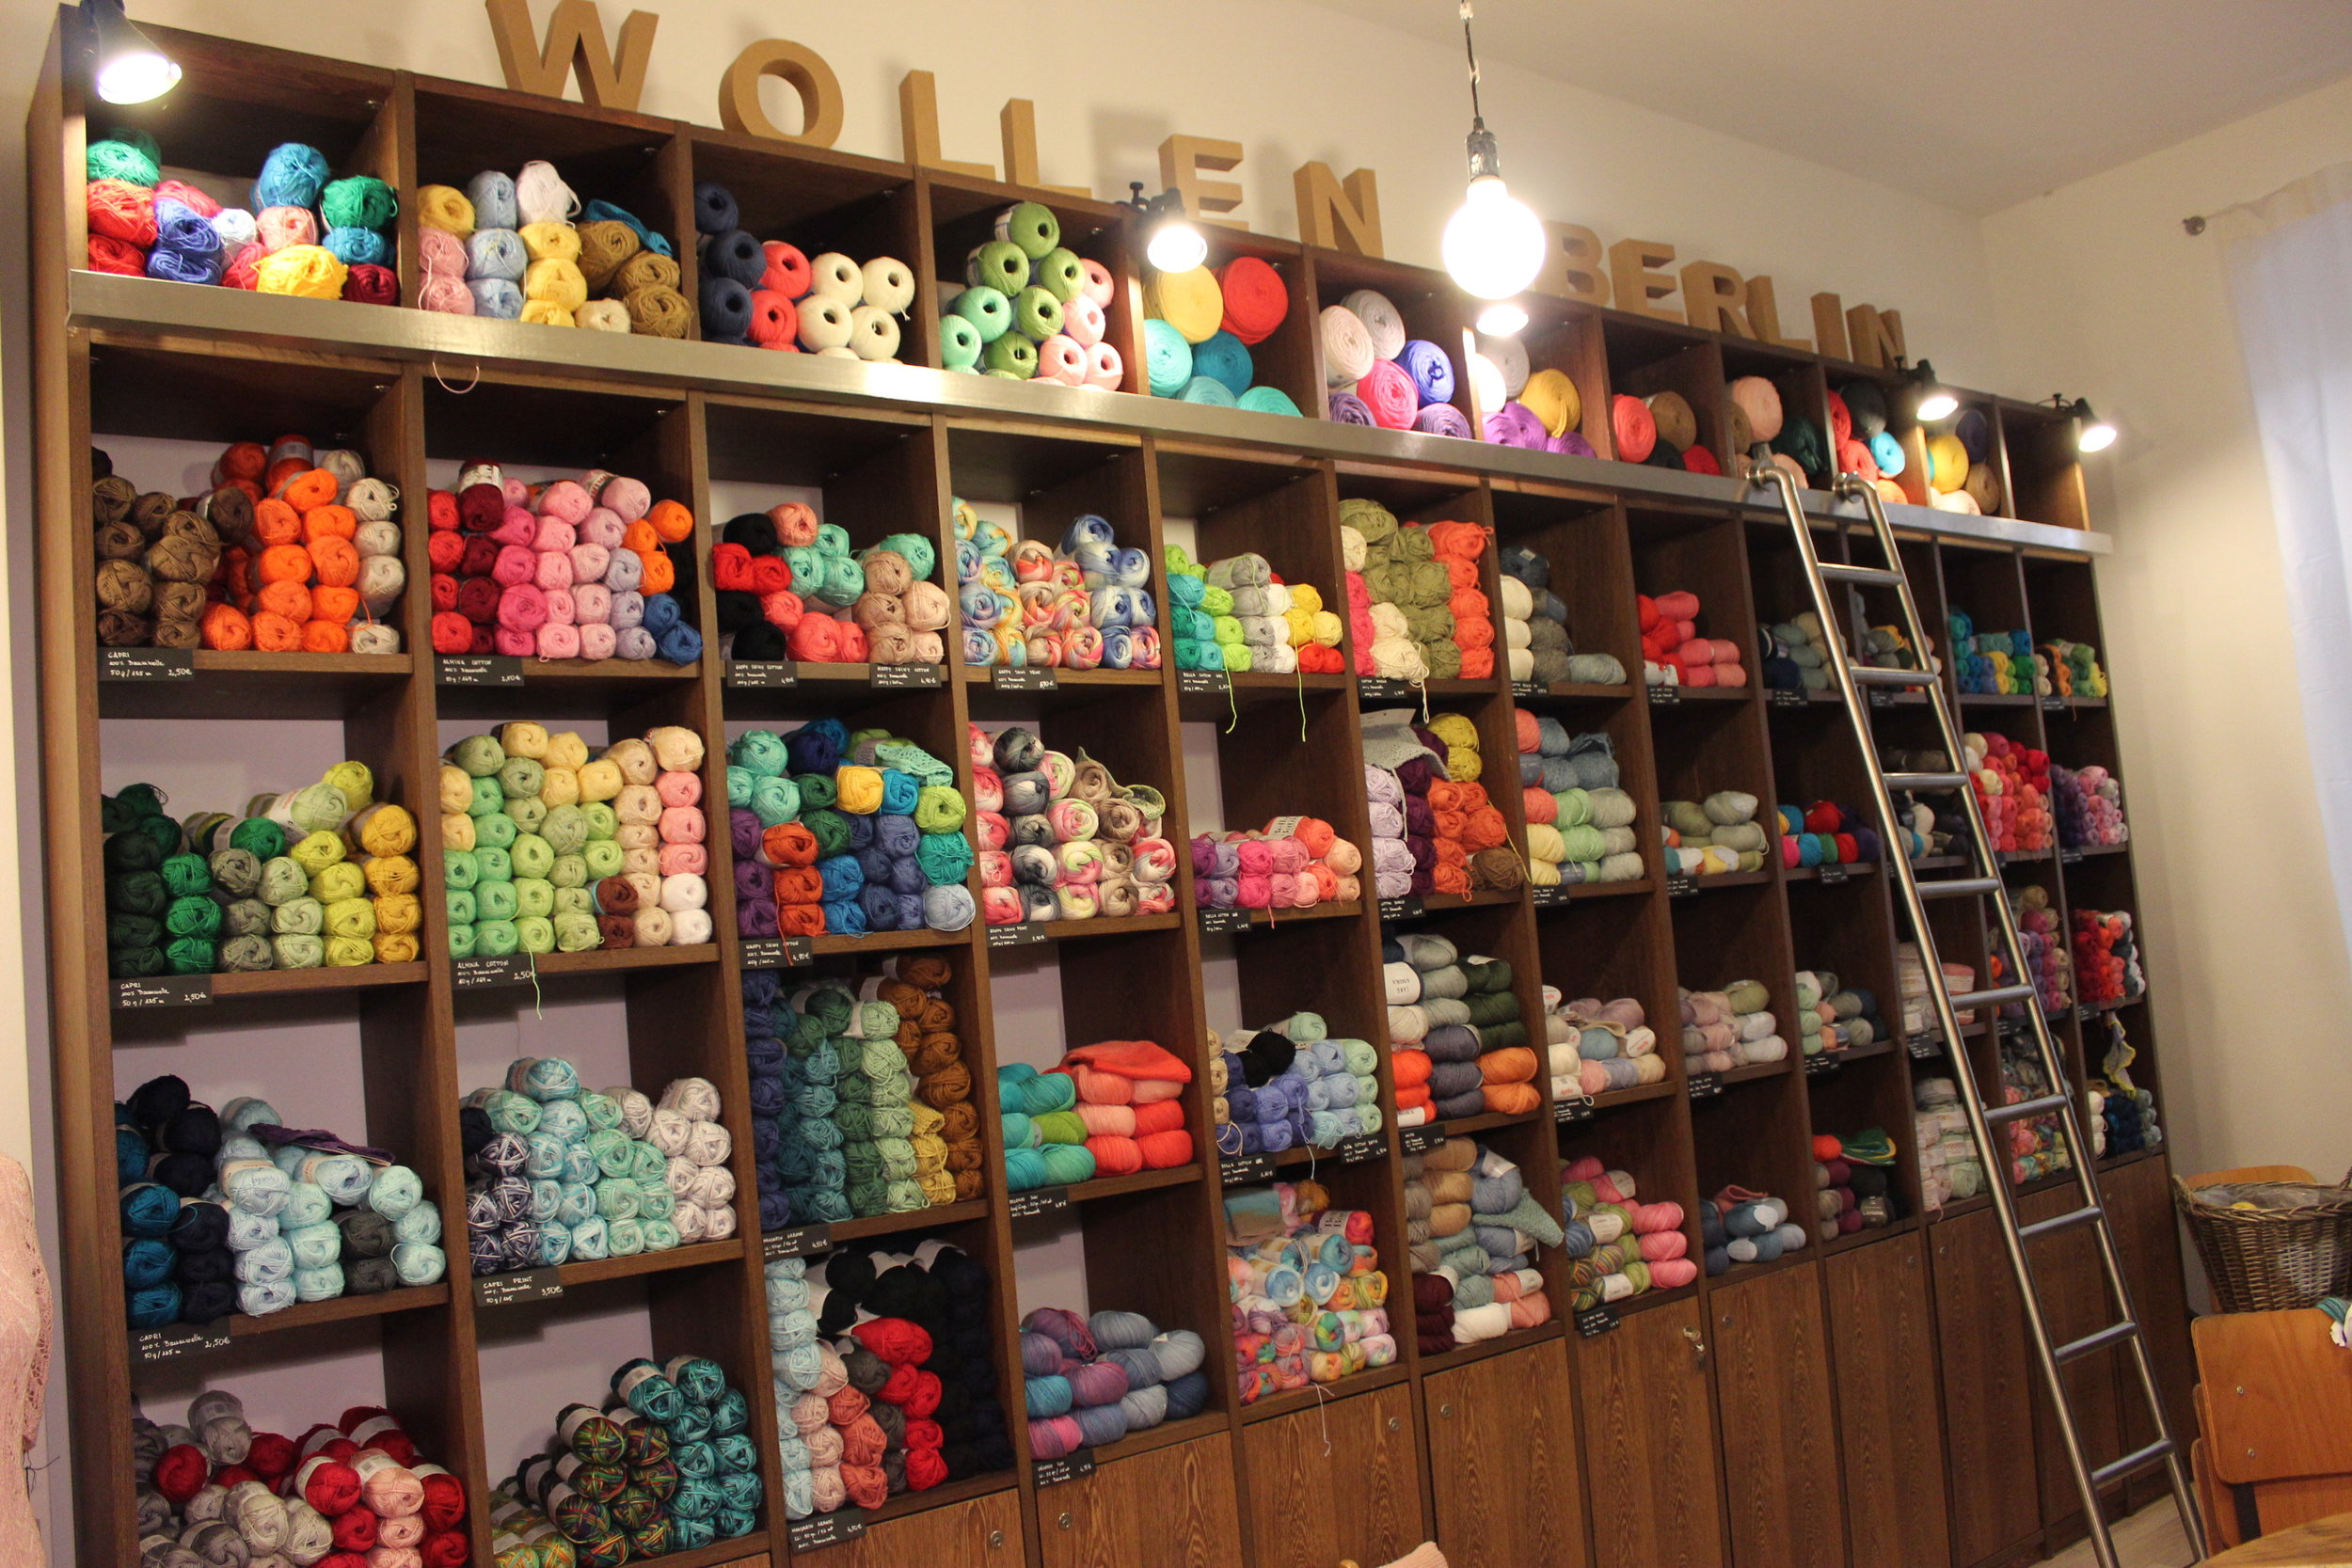 Part of the second room of Wollen Berlin where a lot of workshops take place. And look at that wall of cotton & bamboo goodness!